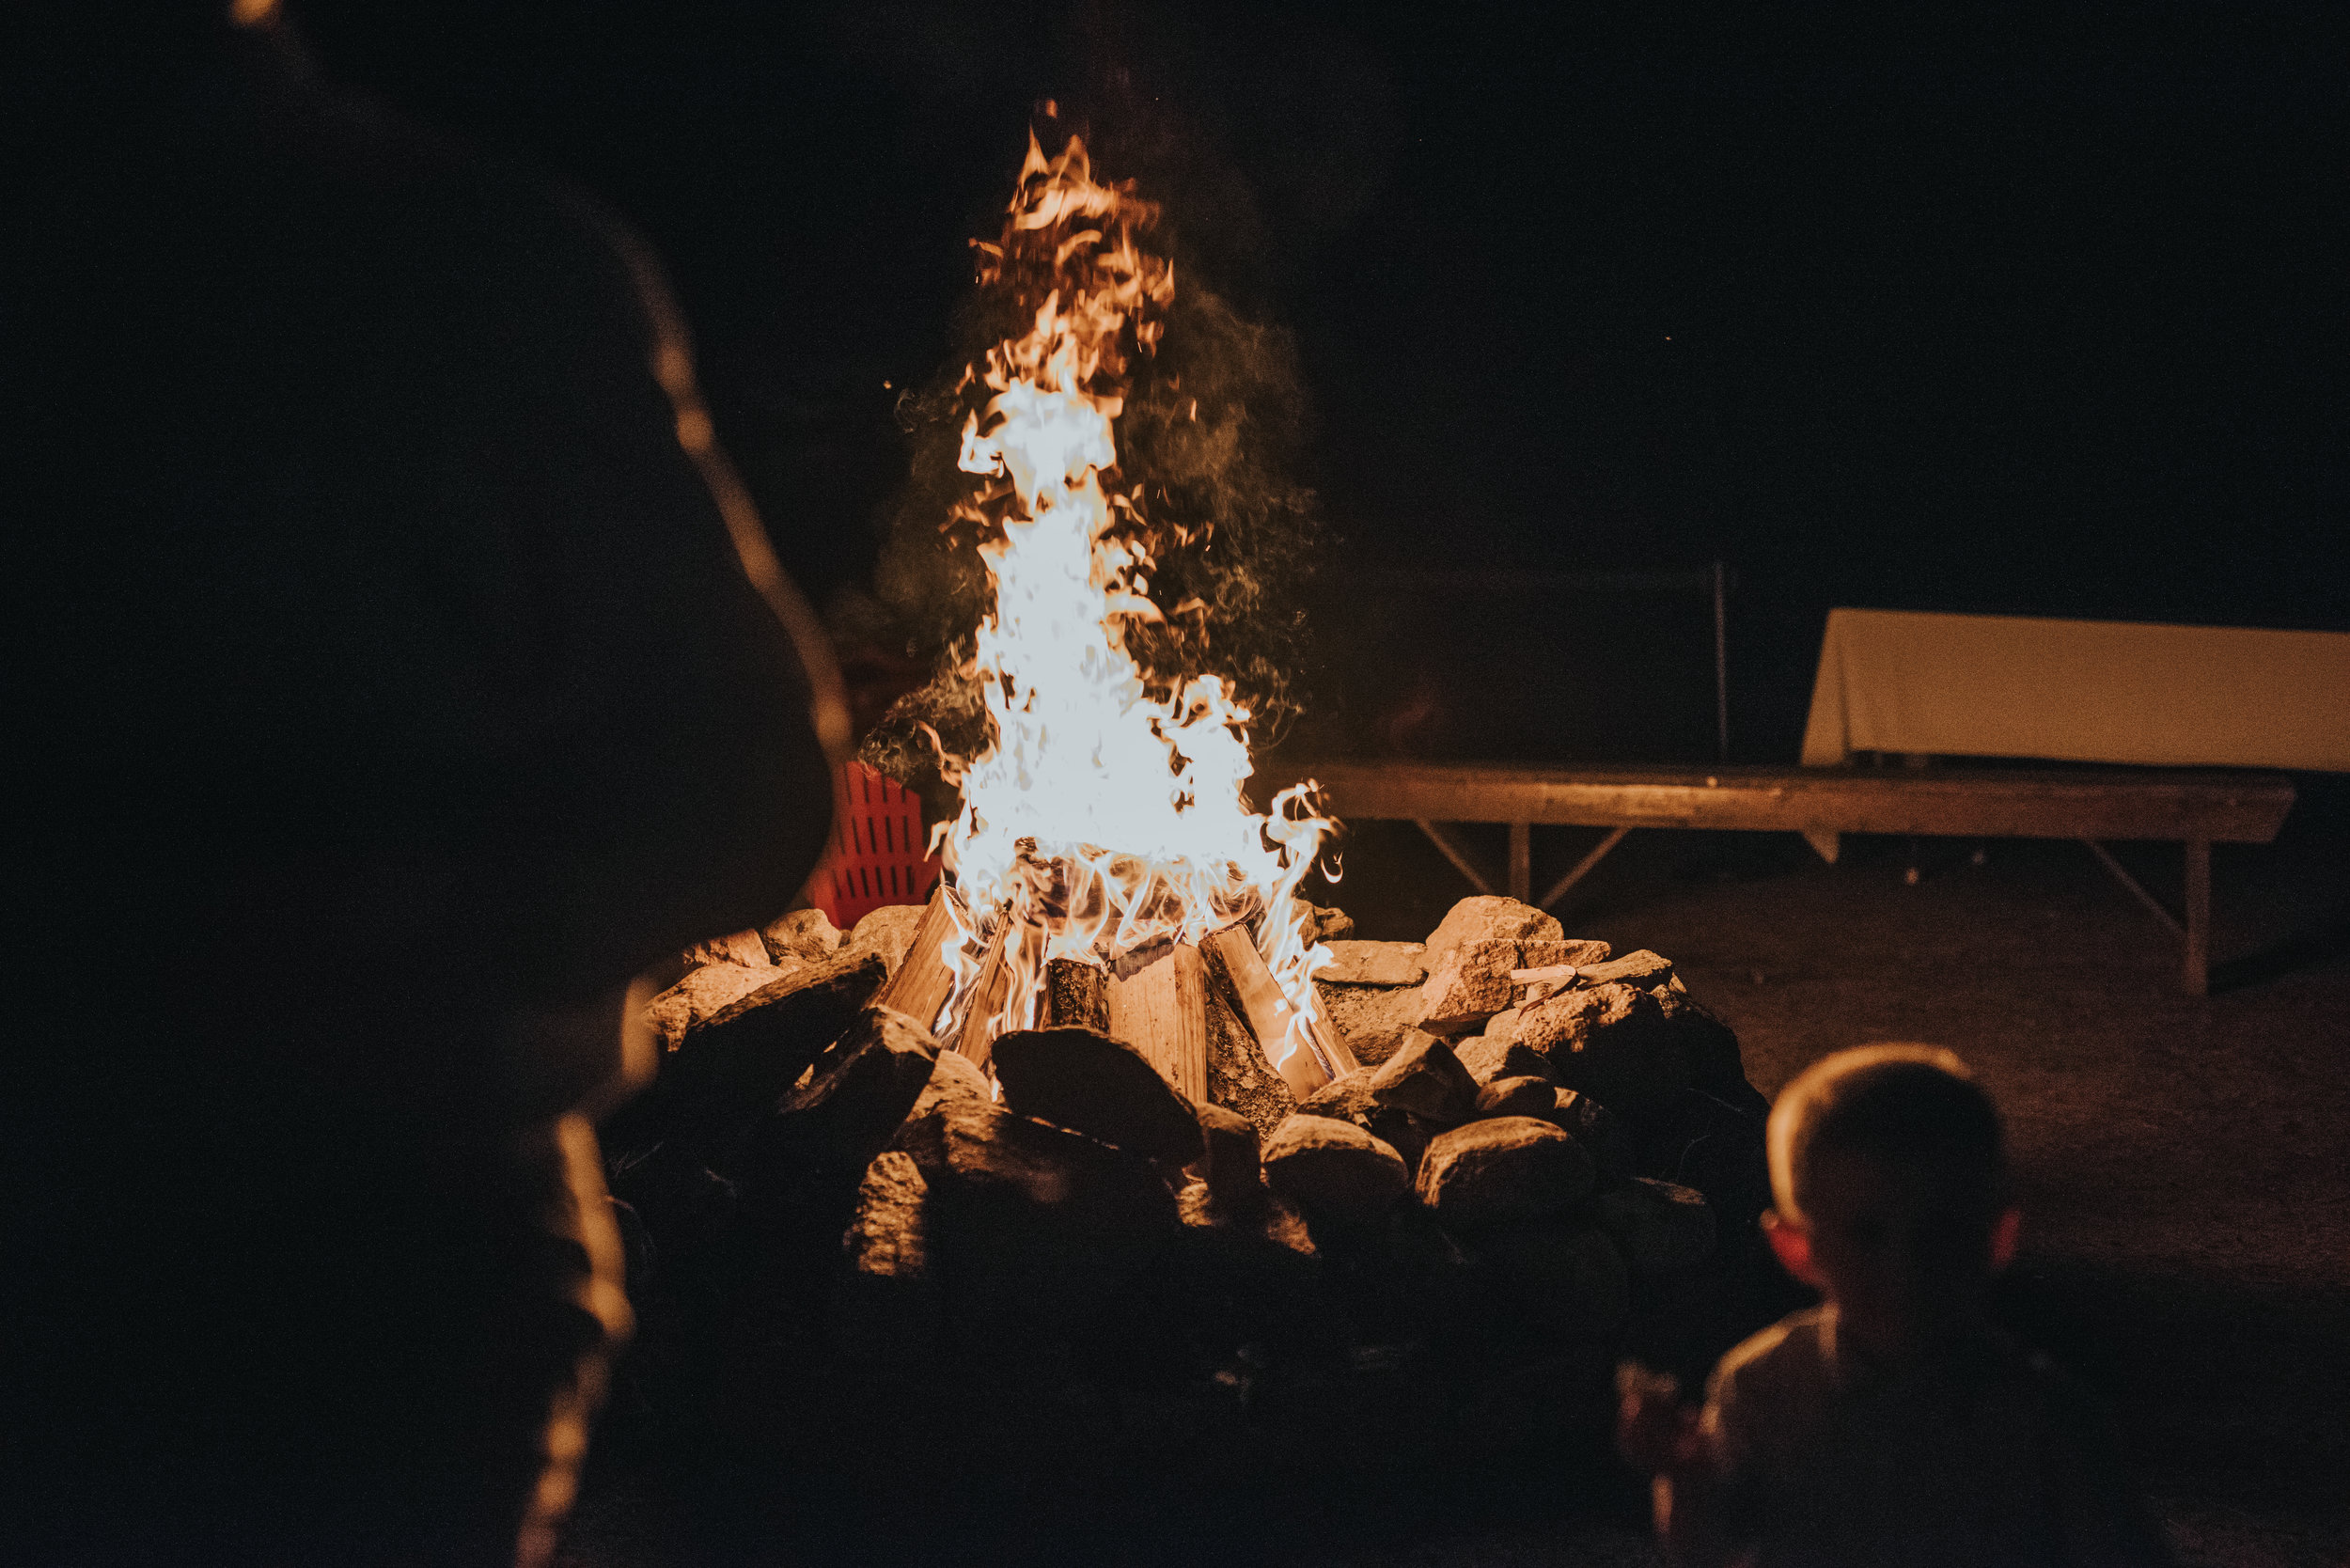 bonfire-rustic-cabin-wedding-reception-toronto-bohemian-boho-outdoor-summer-wedding-documentary-wedding-photography-by-willow-birch-photo.jpg